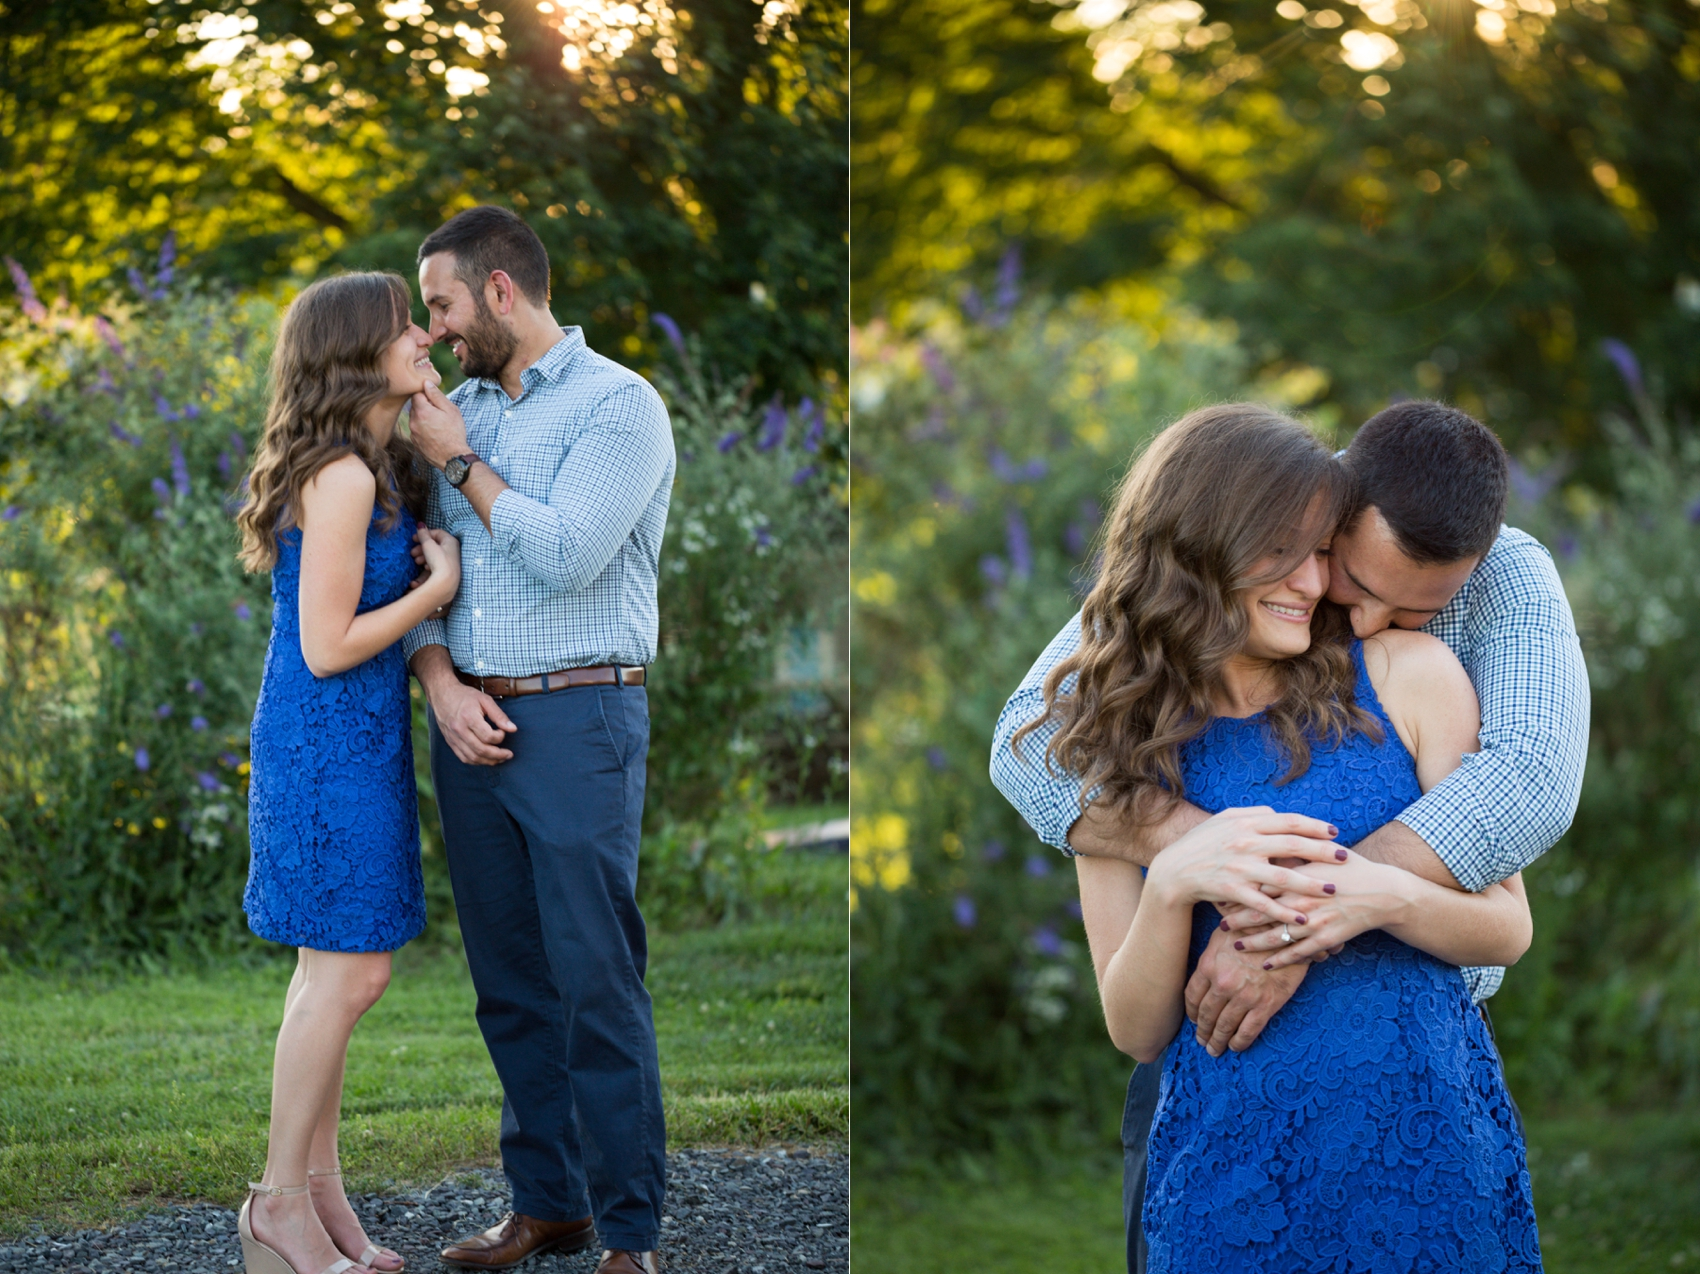 Seven-Oaks-Lavender-Farm-Engagement-Session-2019-0300.jpg